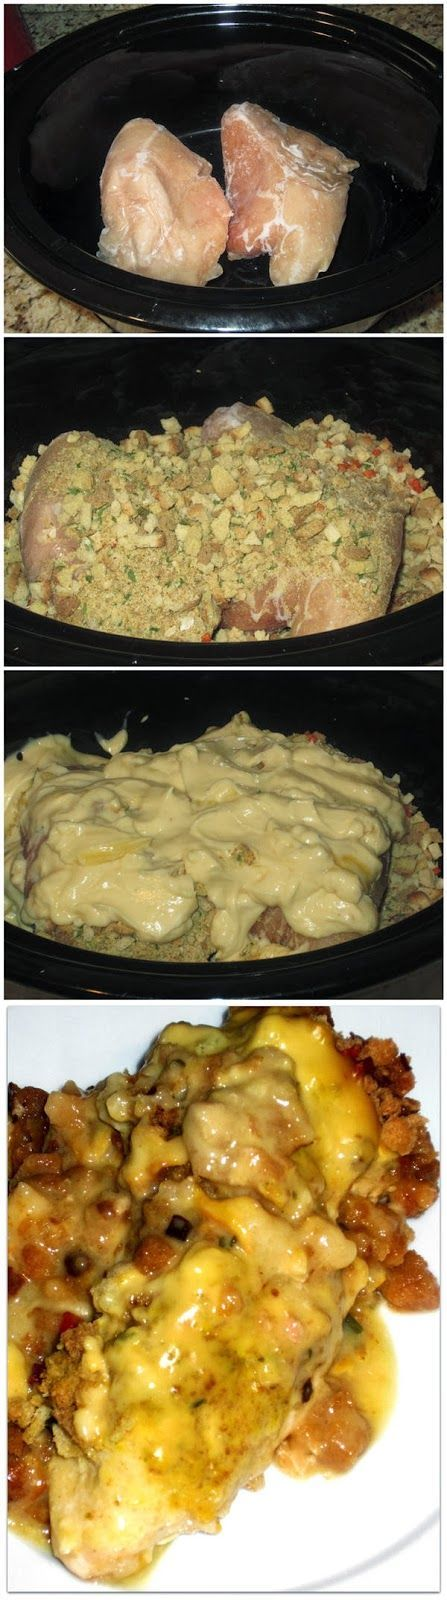 Crockpot Chicken and Stuffing is so easy to make with only 5 ingredients and a crockpot! My family loves this…